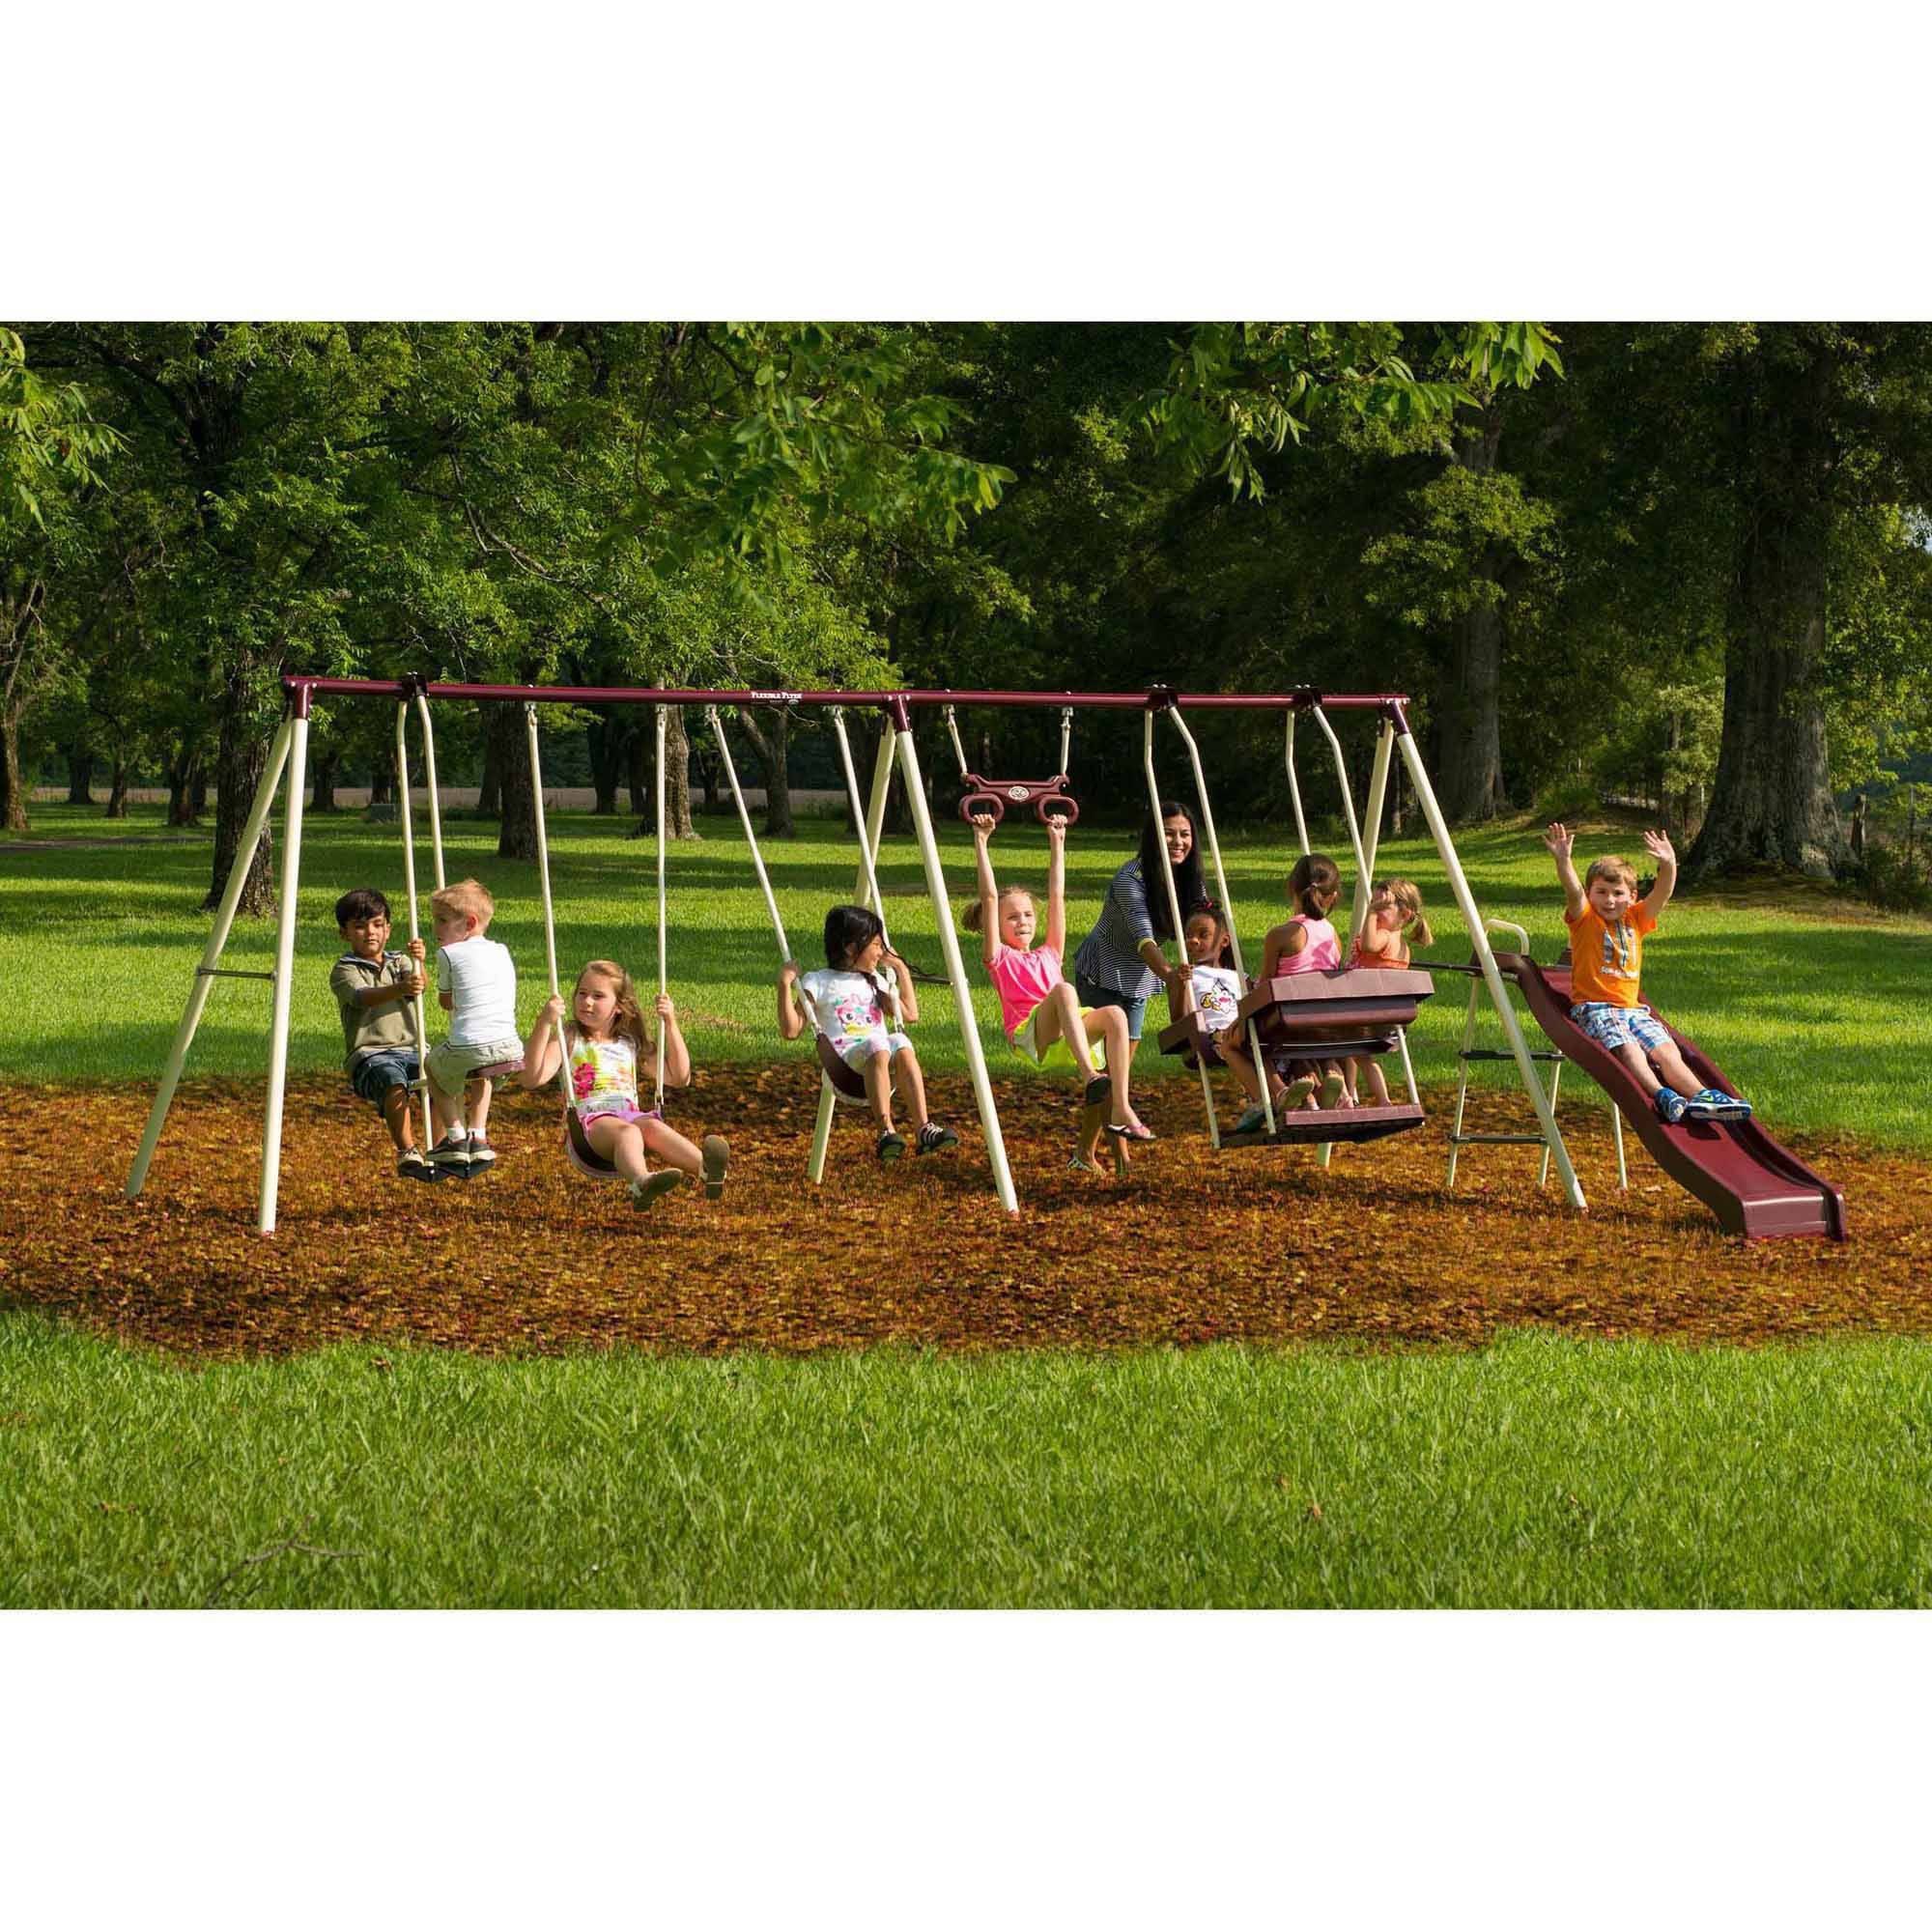 Flexible Flyer Play Park Metal Swing Set by Flexible Flyer (Image #1)